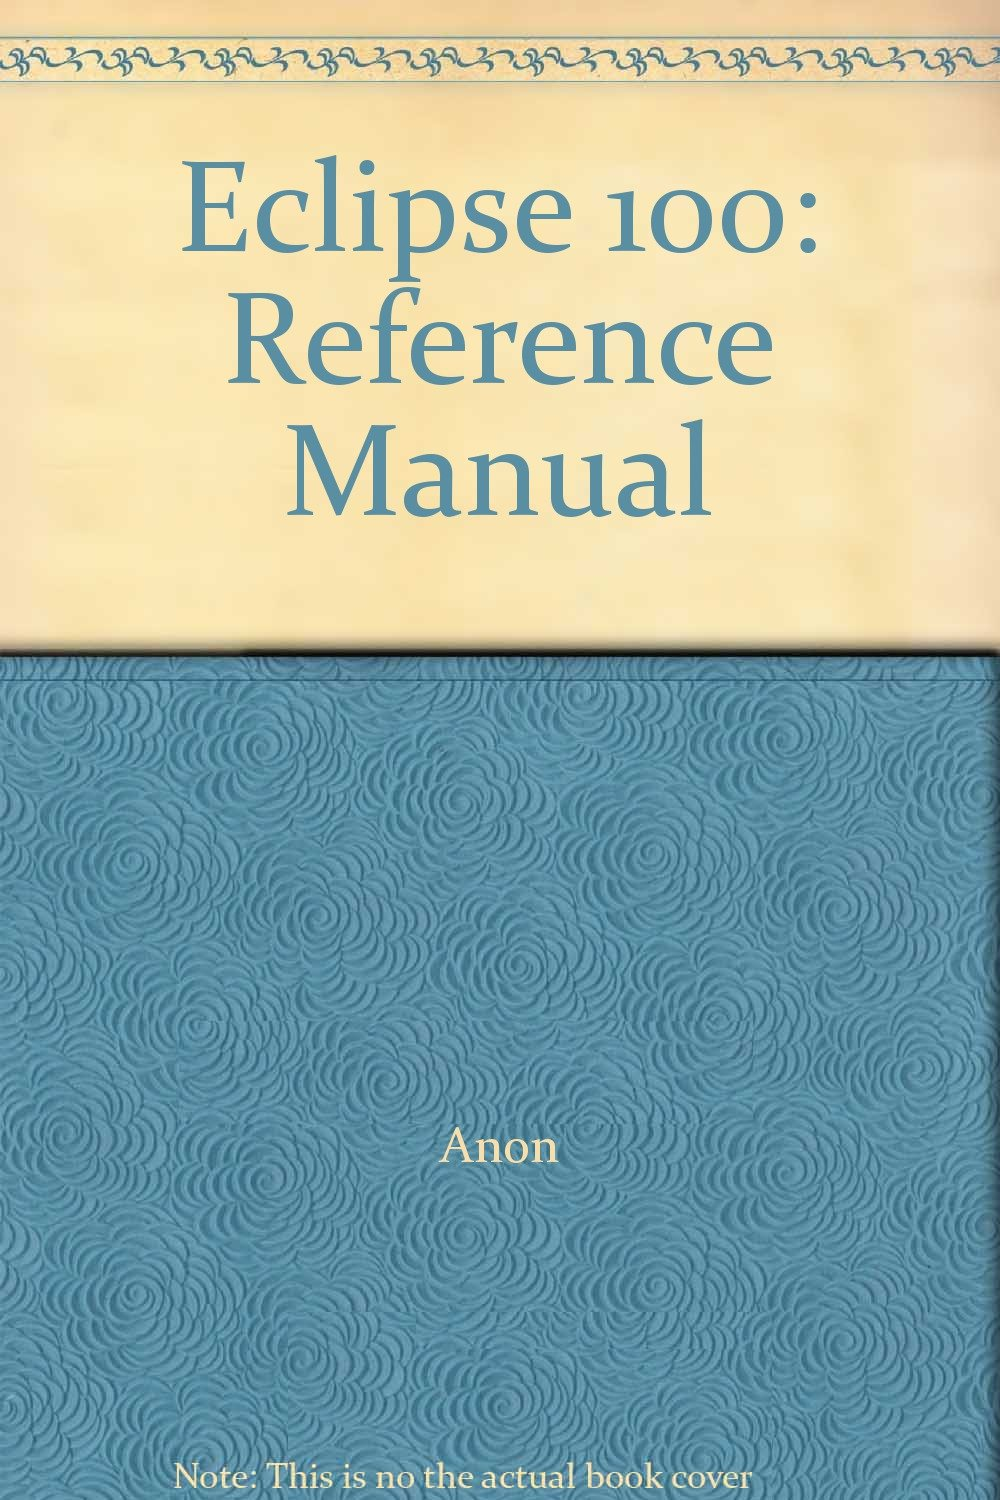 eclipse 100 reference manual anon amazon com books rh amazon com Reference Manual Clip Art eclipse reference manual schlumberger